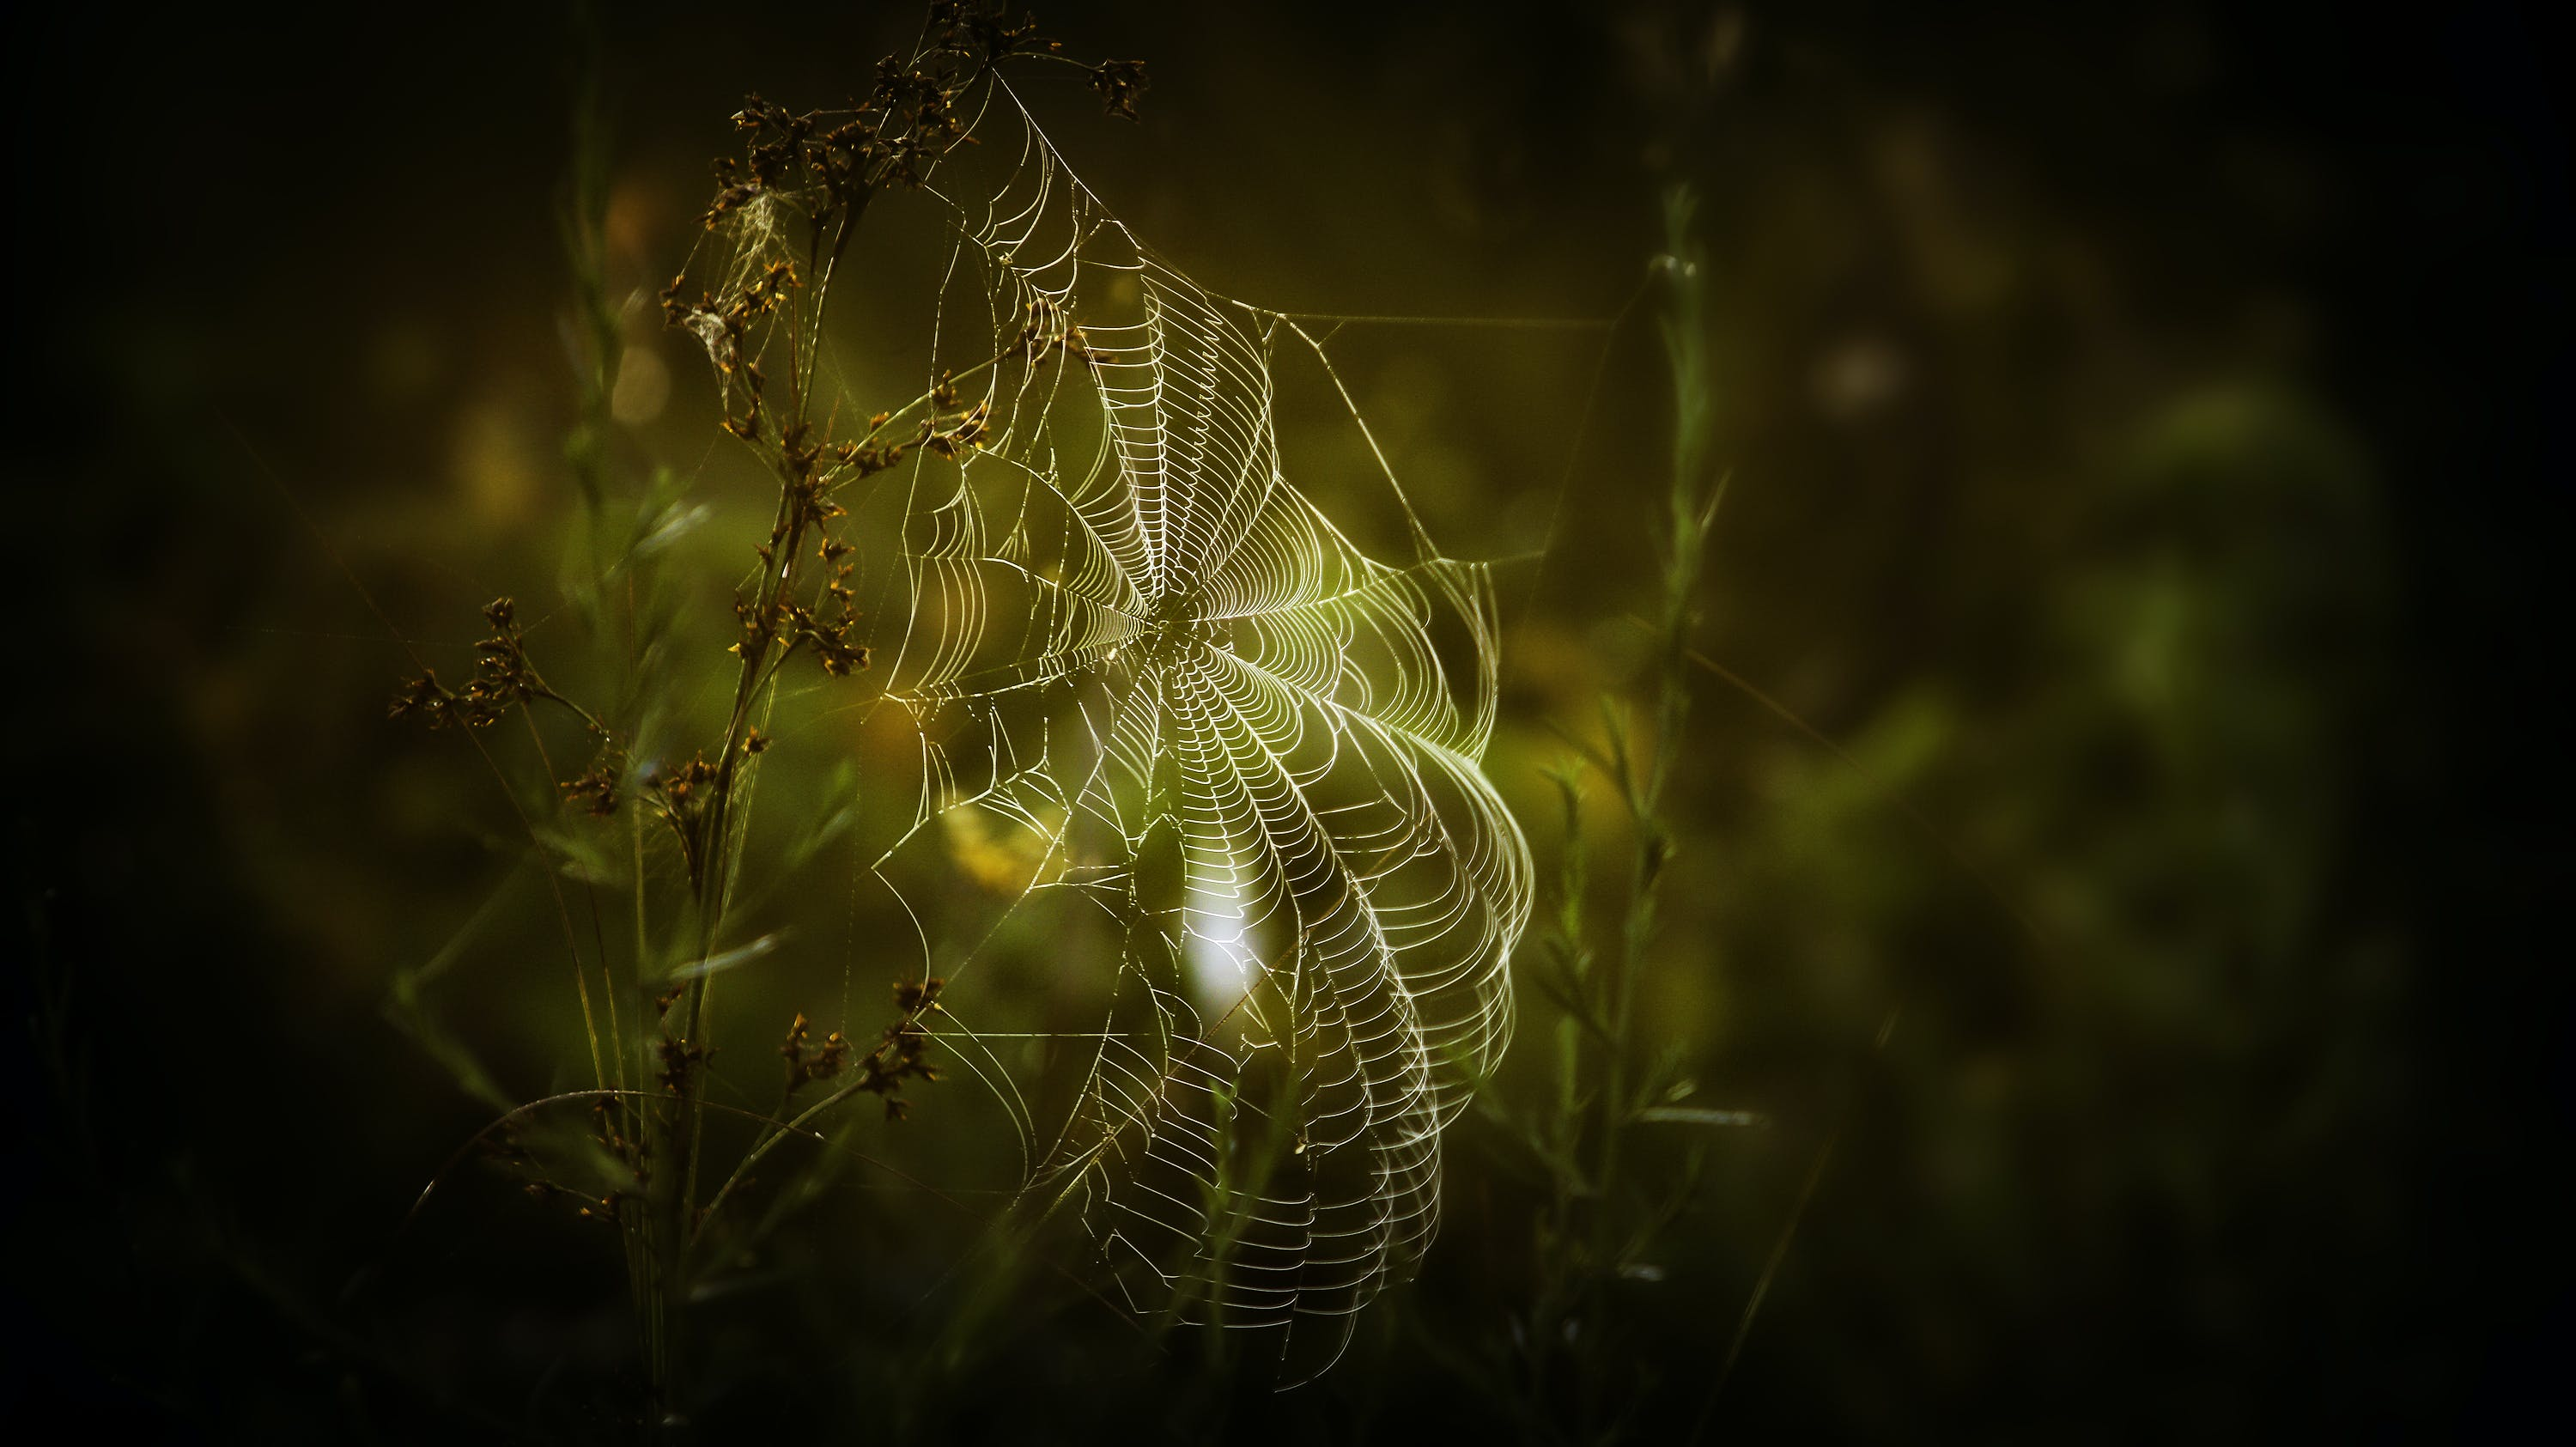 Close-up Photography of Spiderweb